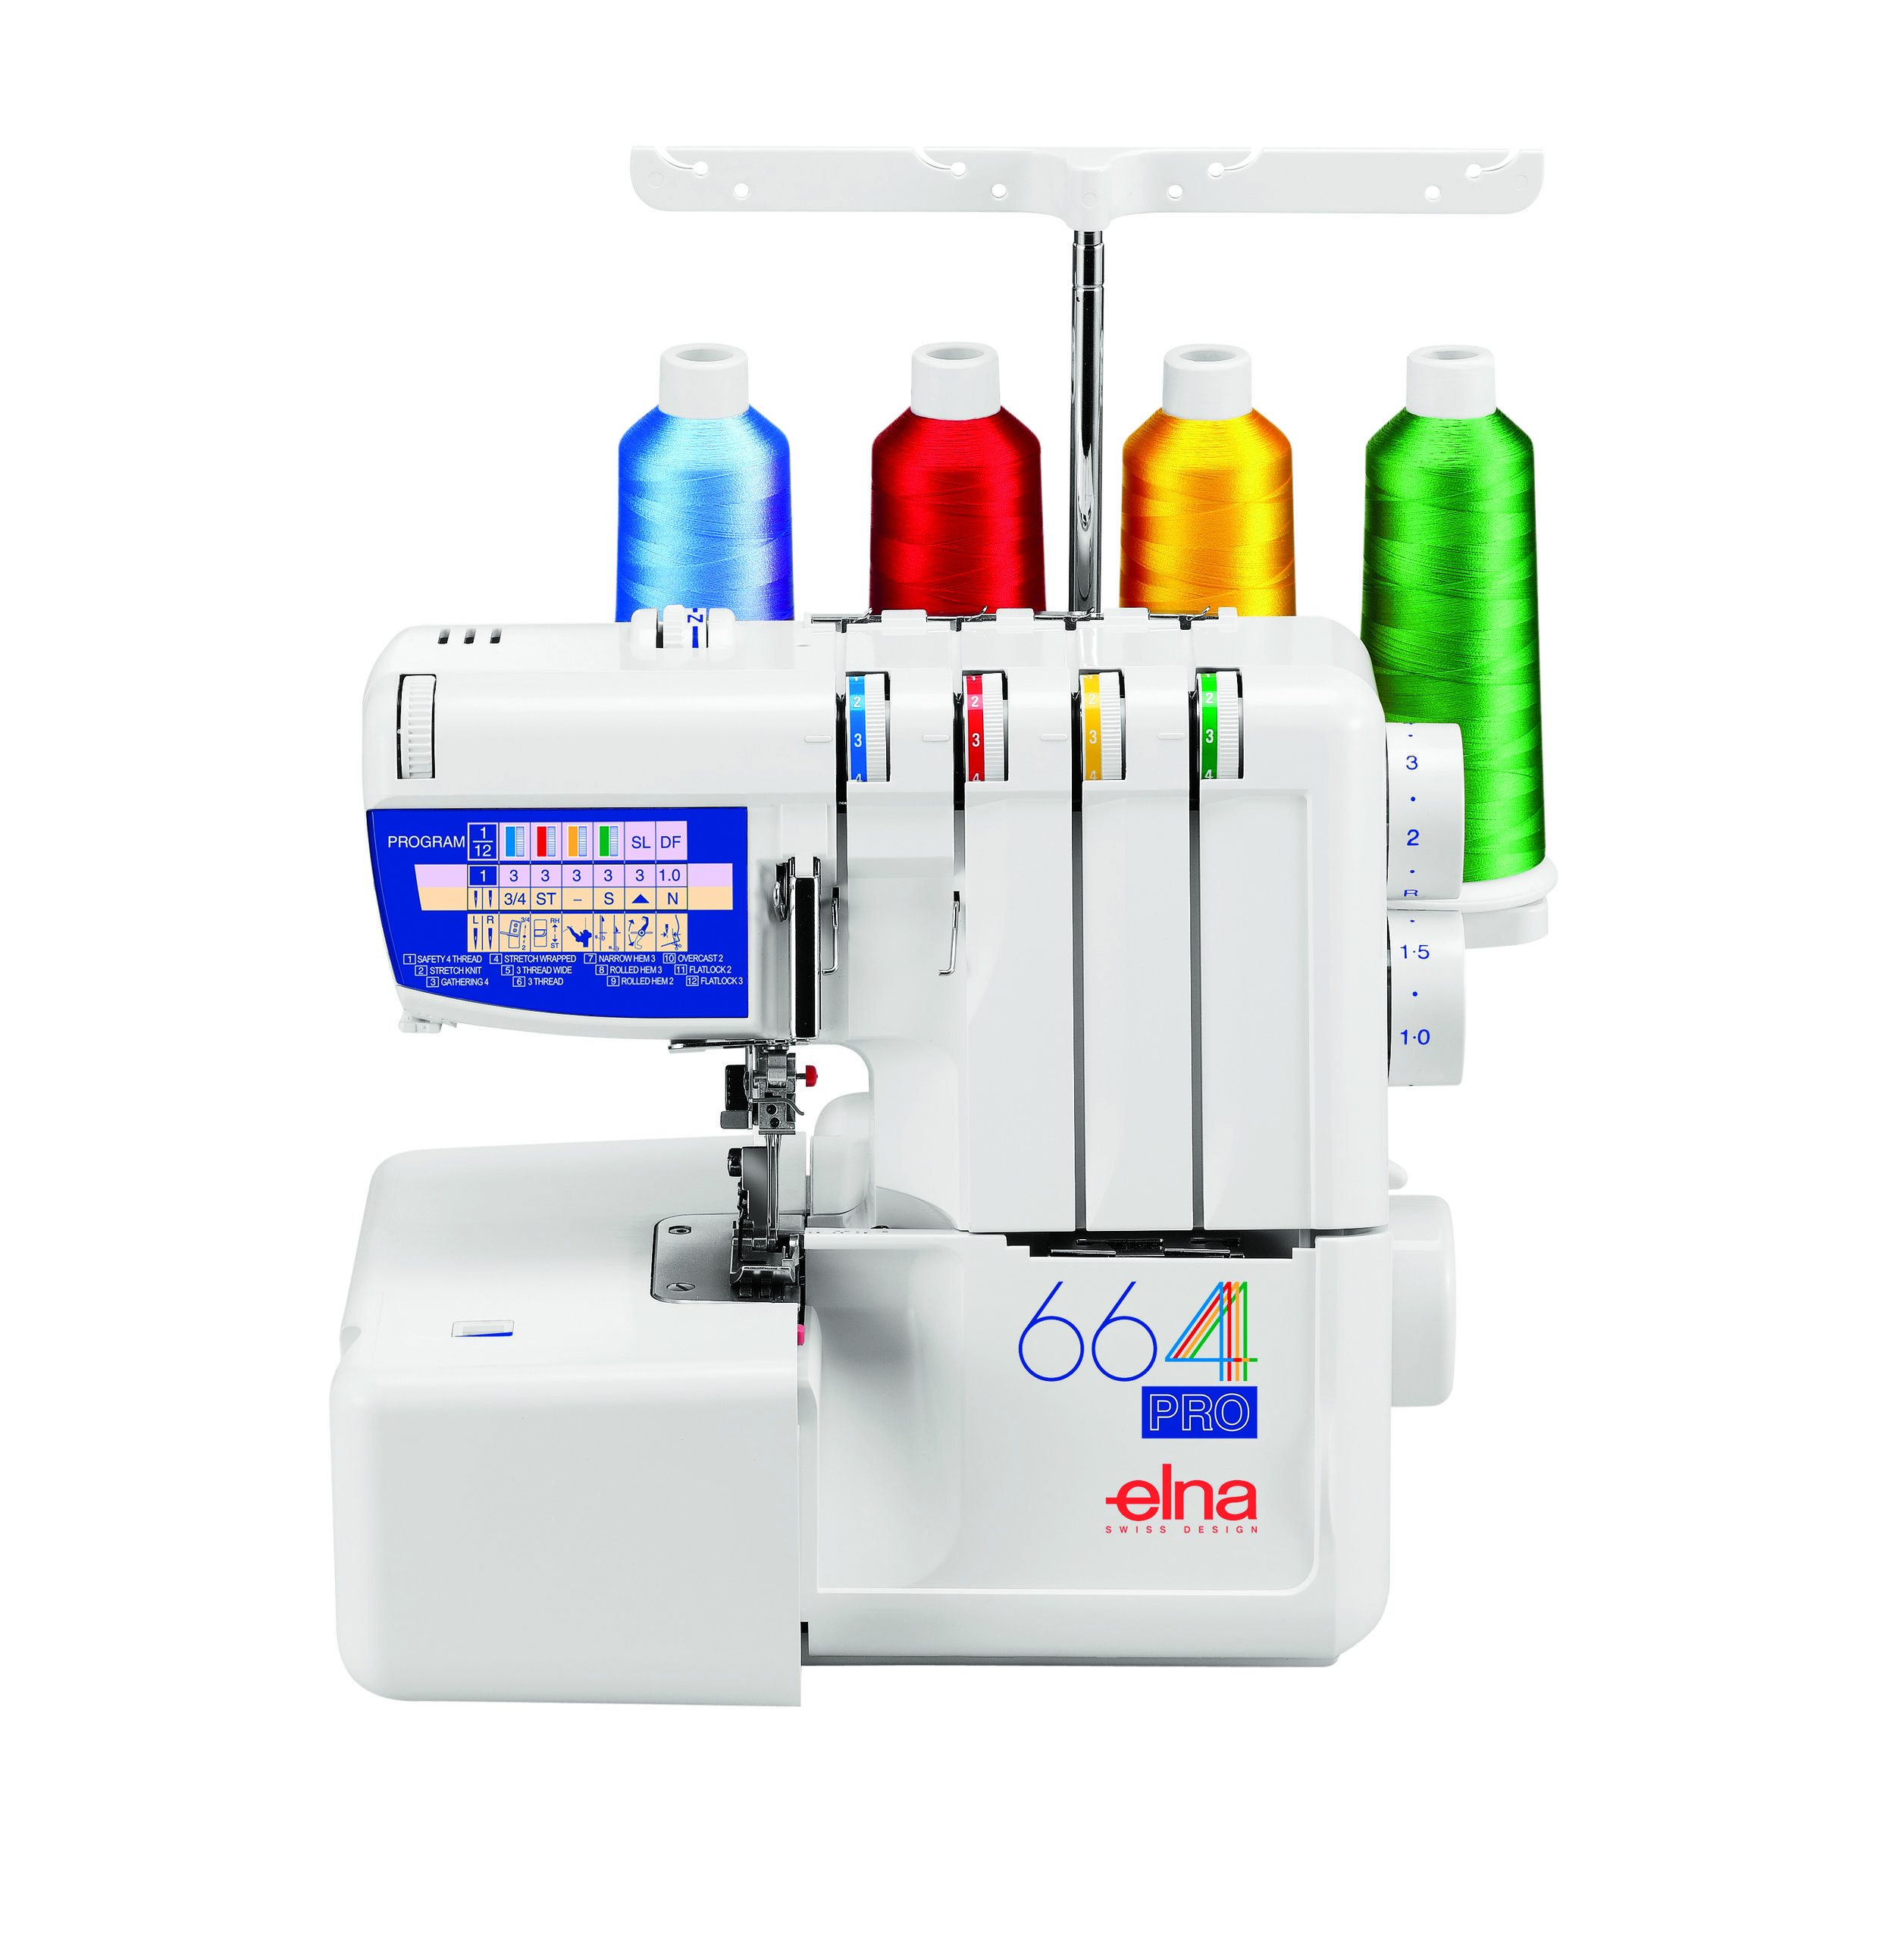 Elna 664  * self threading lower looper  * color coded threading chart  * 4/3/2 thread  * tilting needle clamp